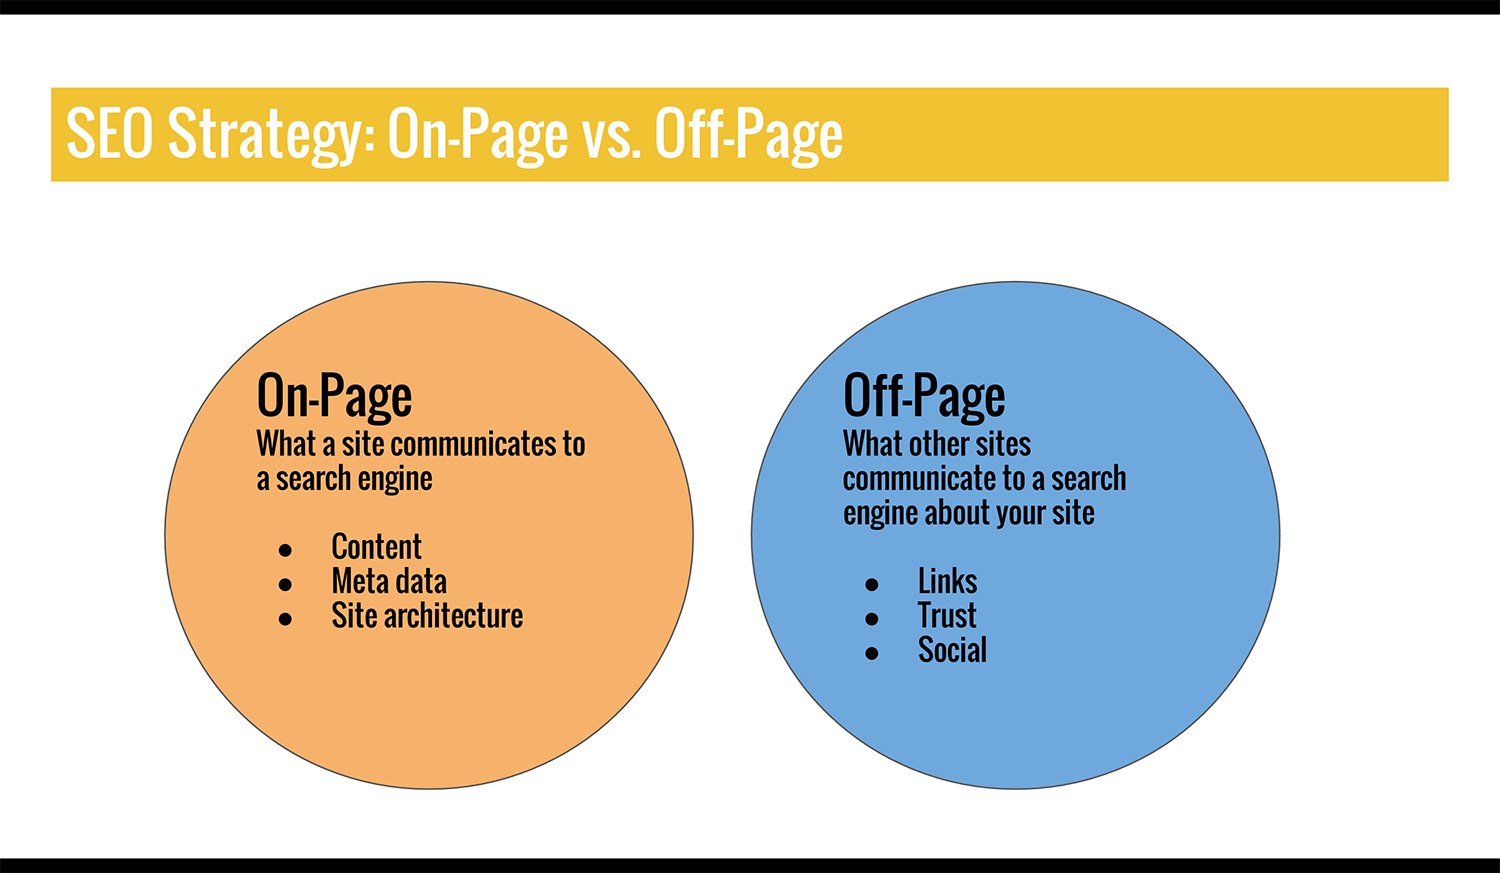 On-Page SEO Best Practices for Inbound Marketers